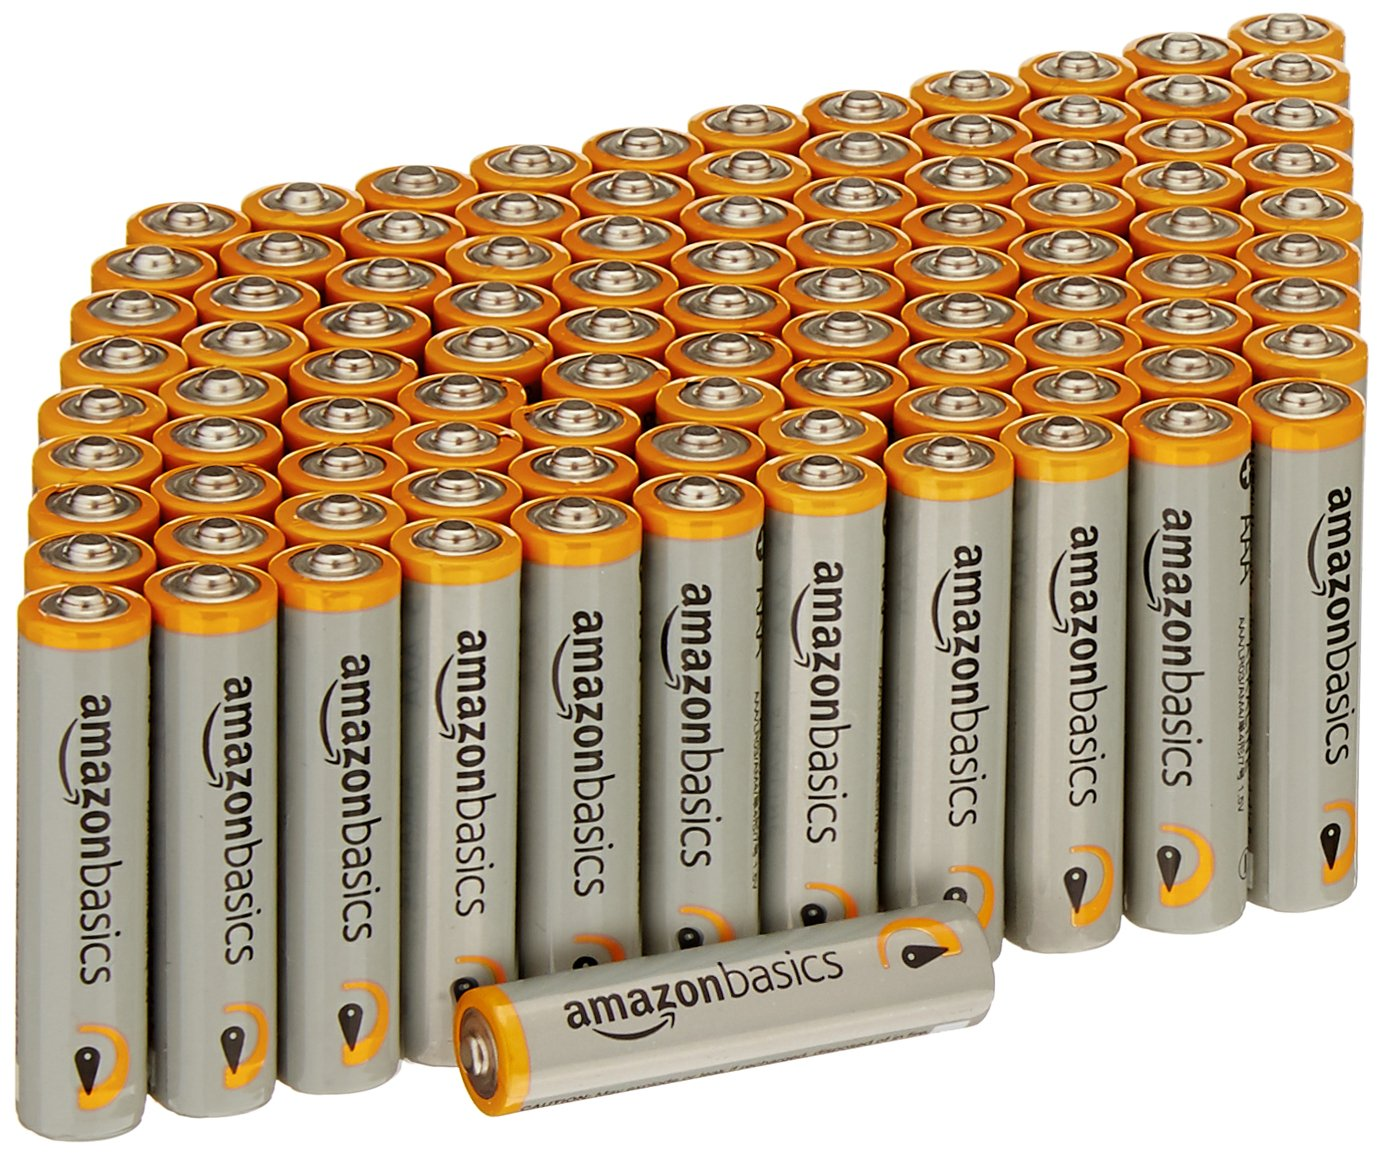 AmazonBasics AAA 1.5 Volt Performance Alkaline Batteries - Pack of 100